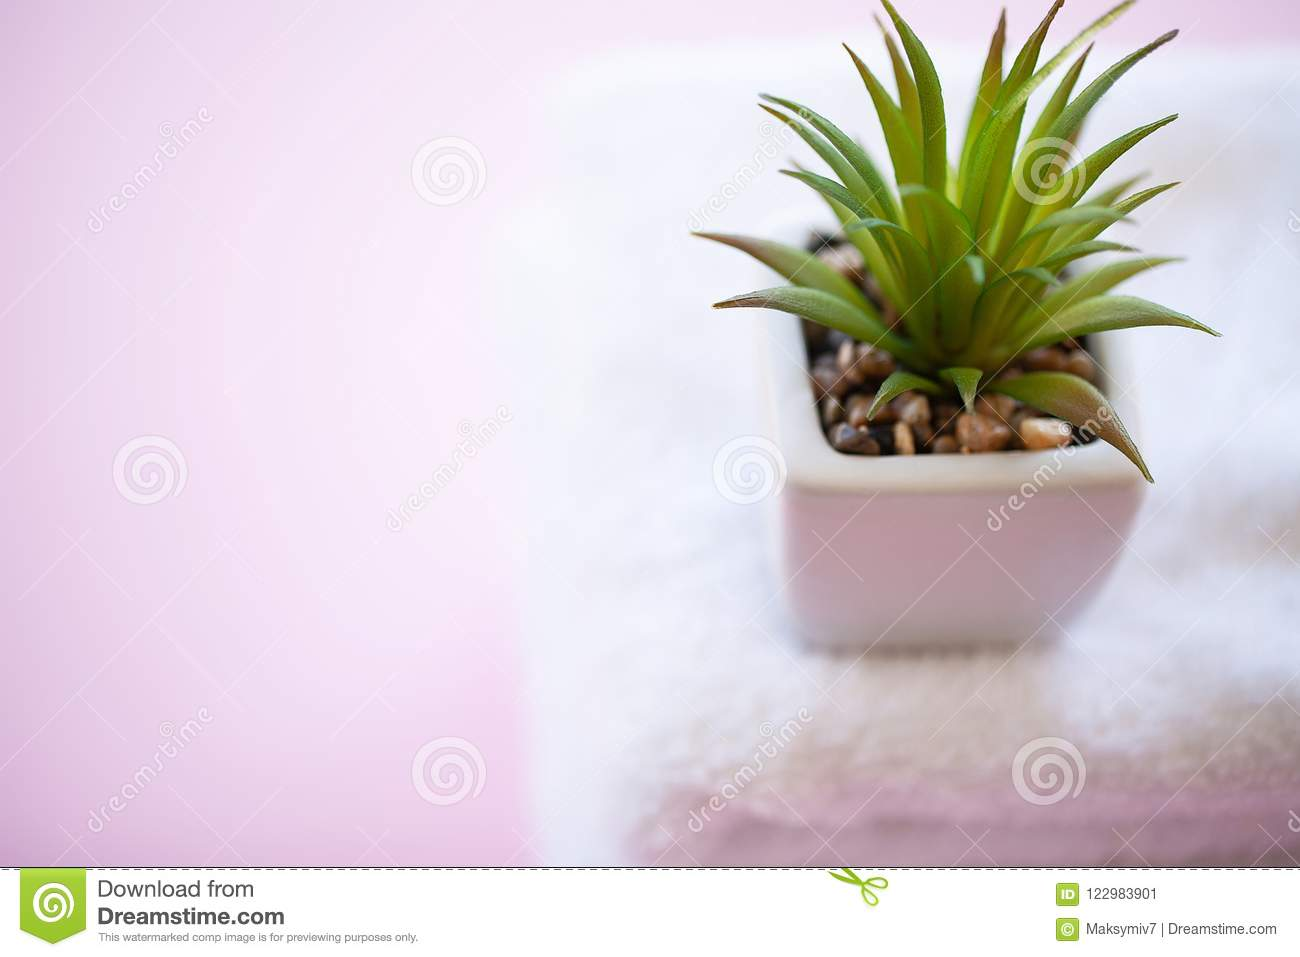 Spa. White Cotton Towels Use In Spa Bathroom on Pink Background.